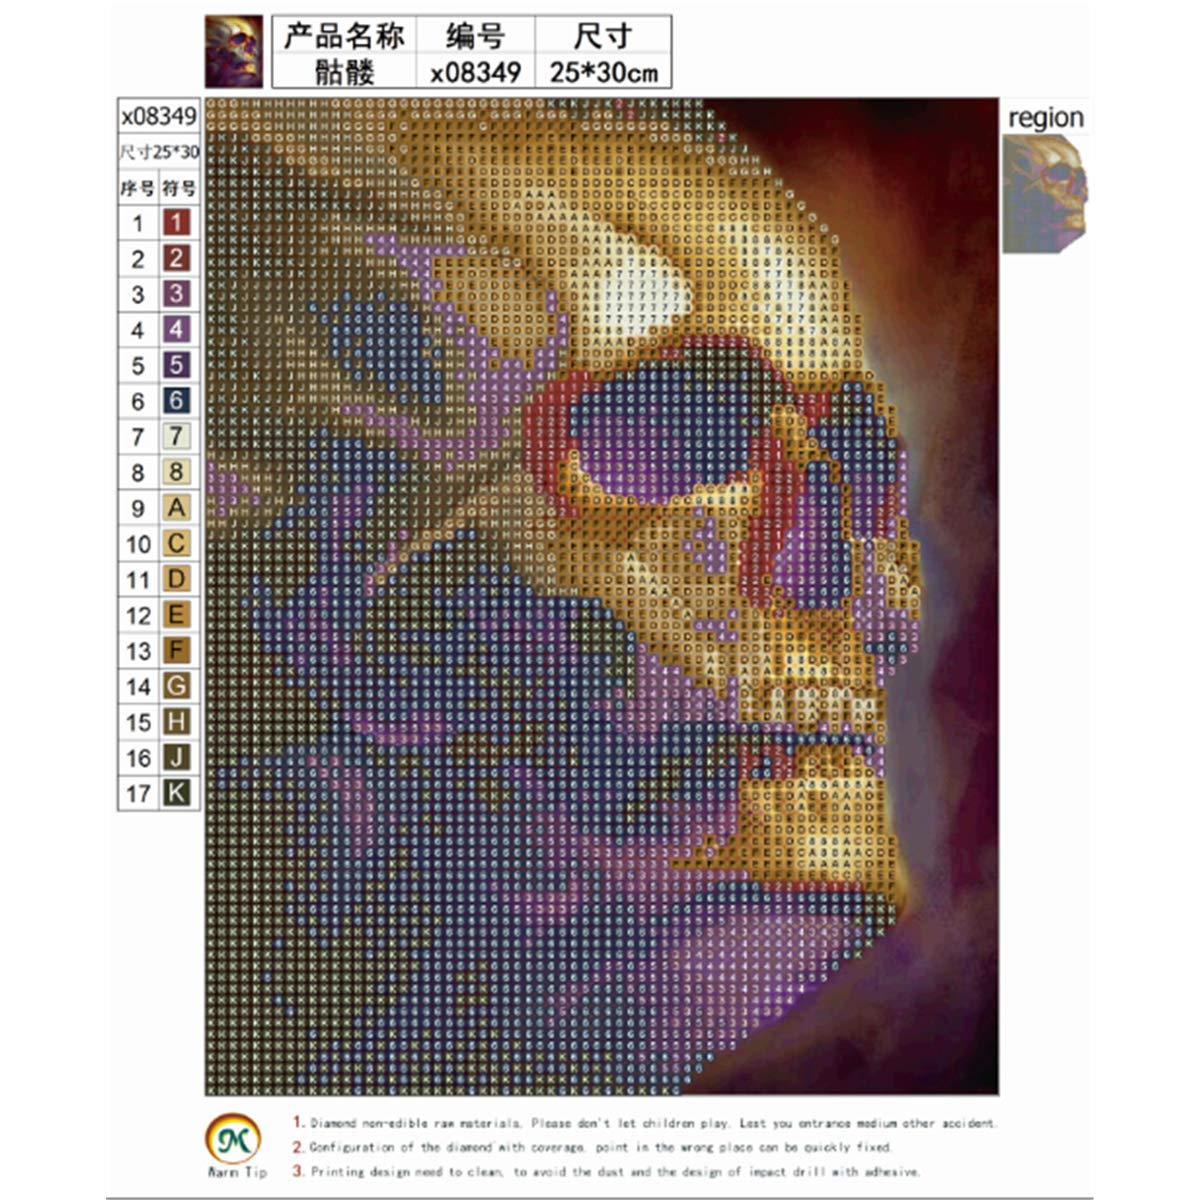 feilin Skull DIY 5D Diamond Rhinestone Crystal Painting Cross Stitch Kit Diamond Embroidery Painting by Number Kits Wall Art Decor 25x30cm 5D Diamond Painting